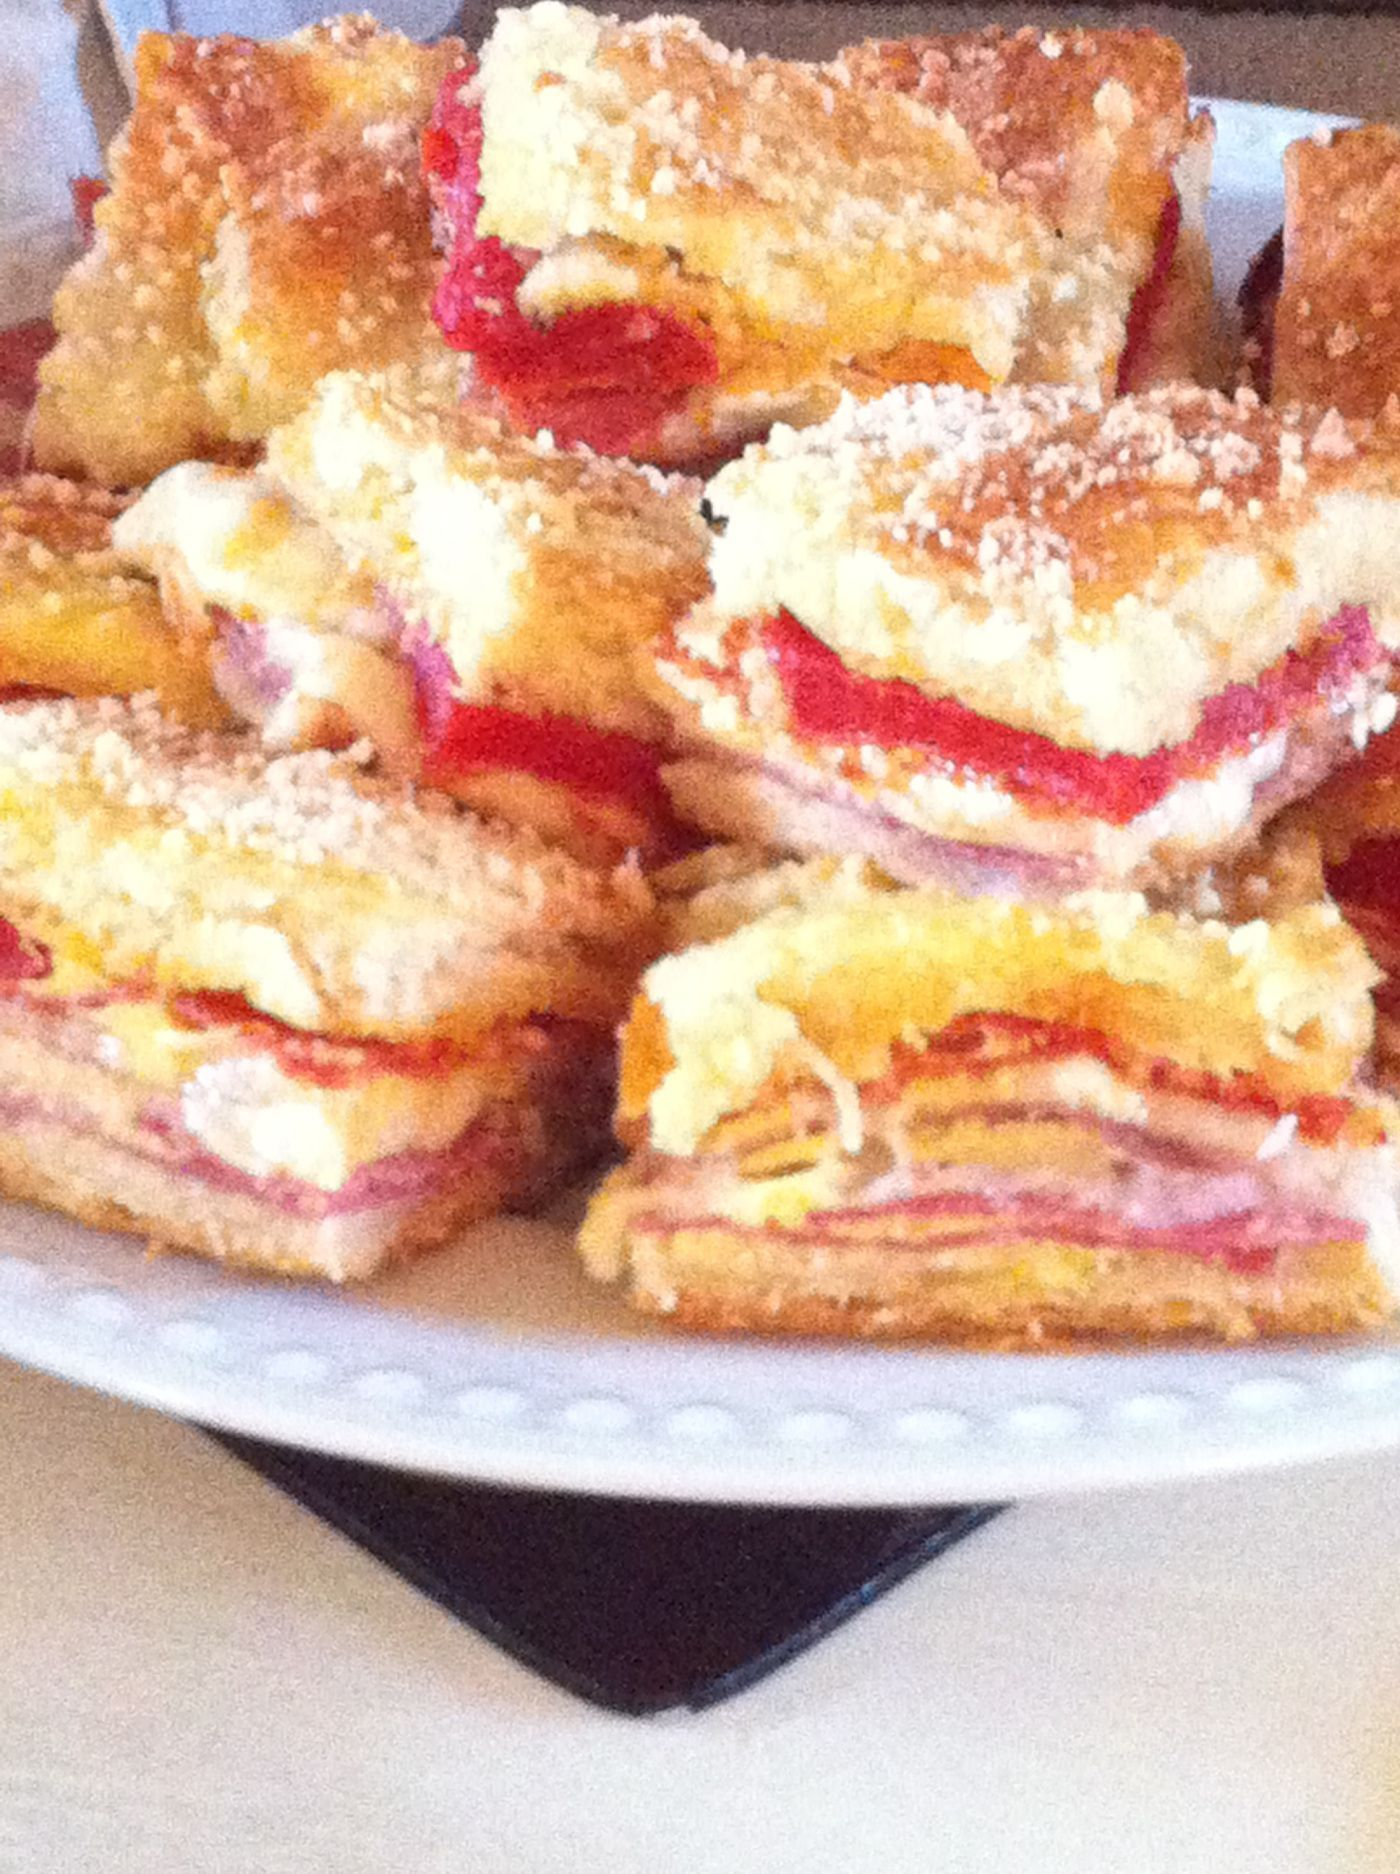 Antipasto squares--The main players are a variety of deli meats and cheese layered between a crescent roll crust. But what takes it over the top are the roasted red peppers that are sliced thin and layered haphazardly just below the top crust. #antipastosquares Antipasto squares--The main players are a variety of deli meats and cheese layered between a crescent roll crust. But what takes it over the top are the roasted red peppers that are sliced thin and layered haphazardly just below the top c #antipastosquares